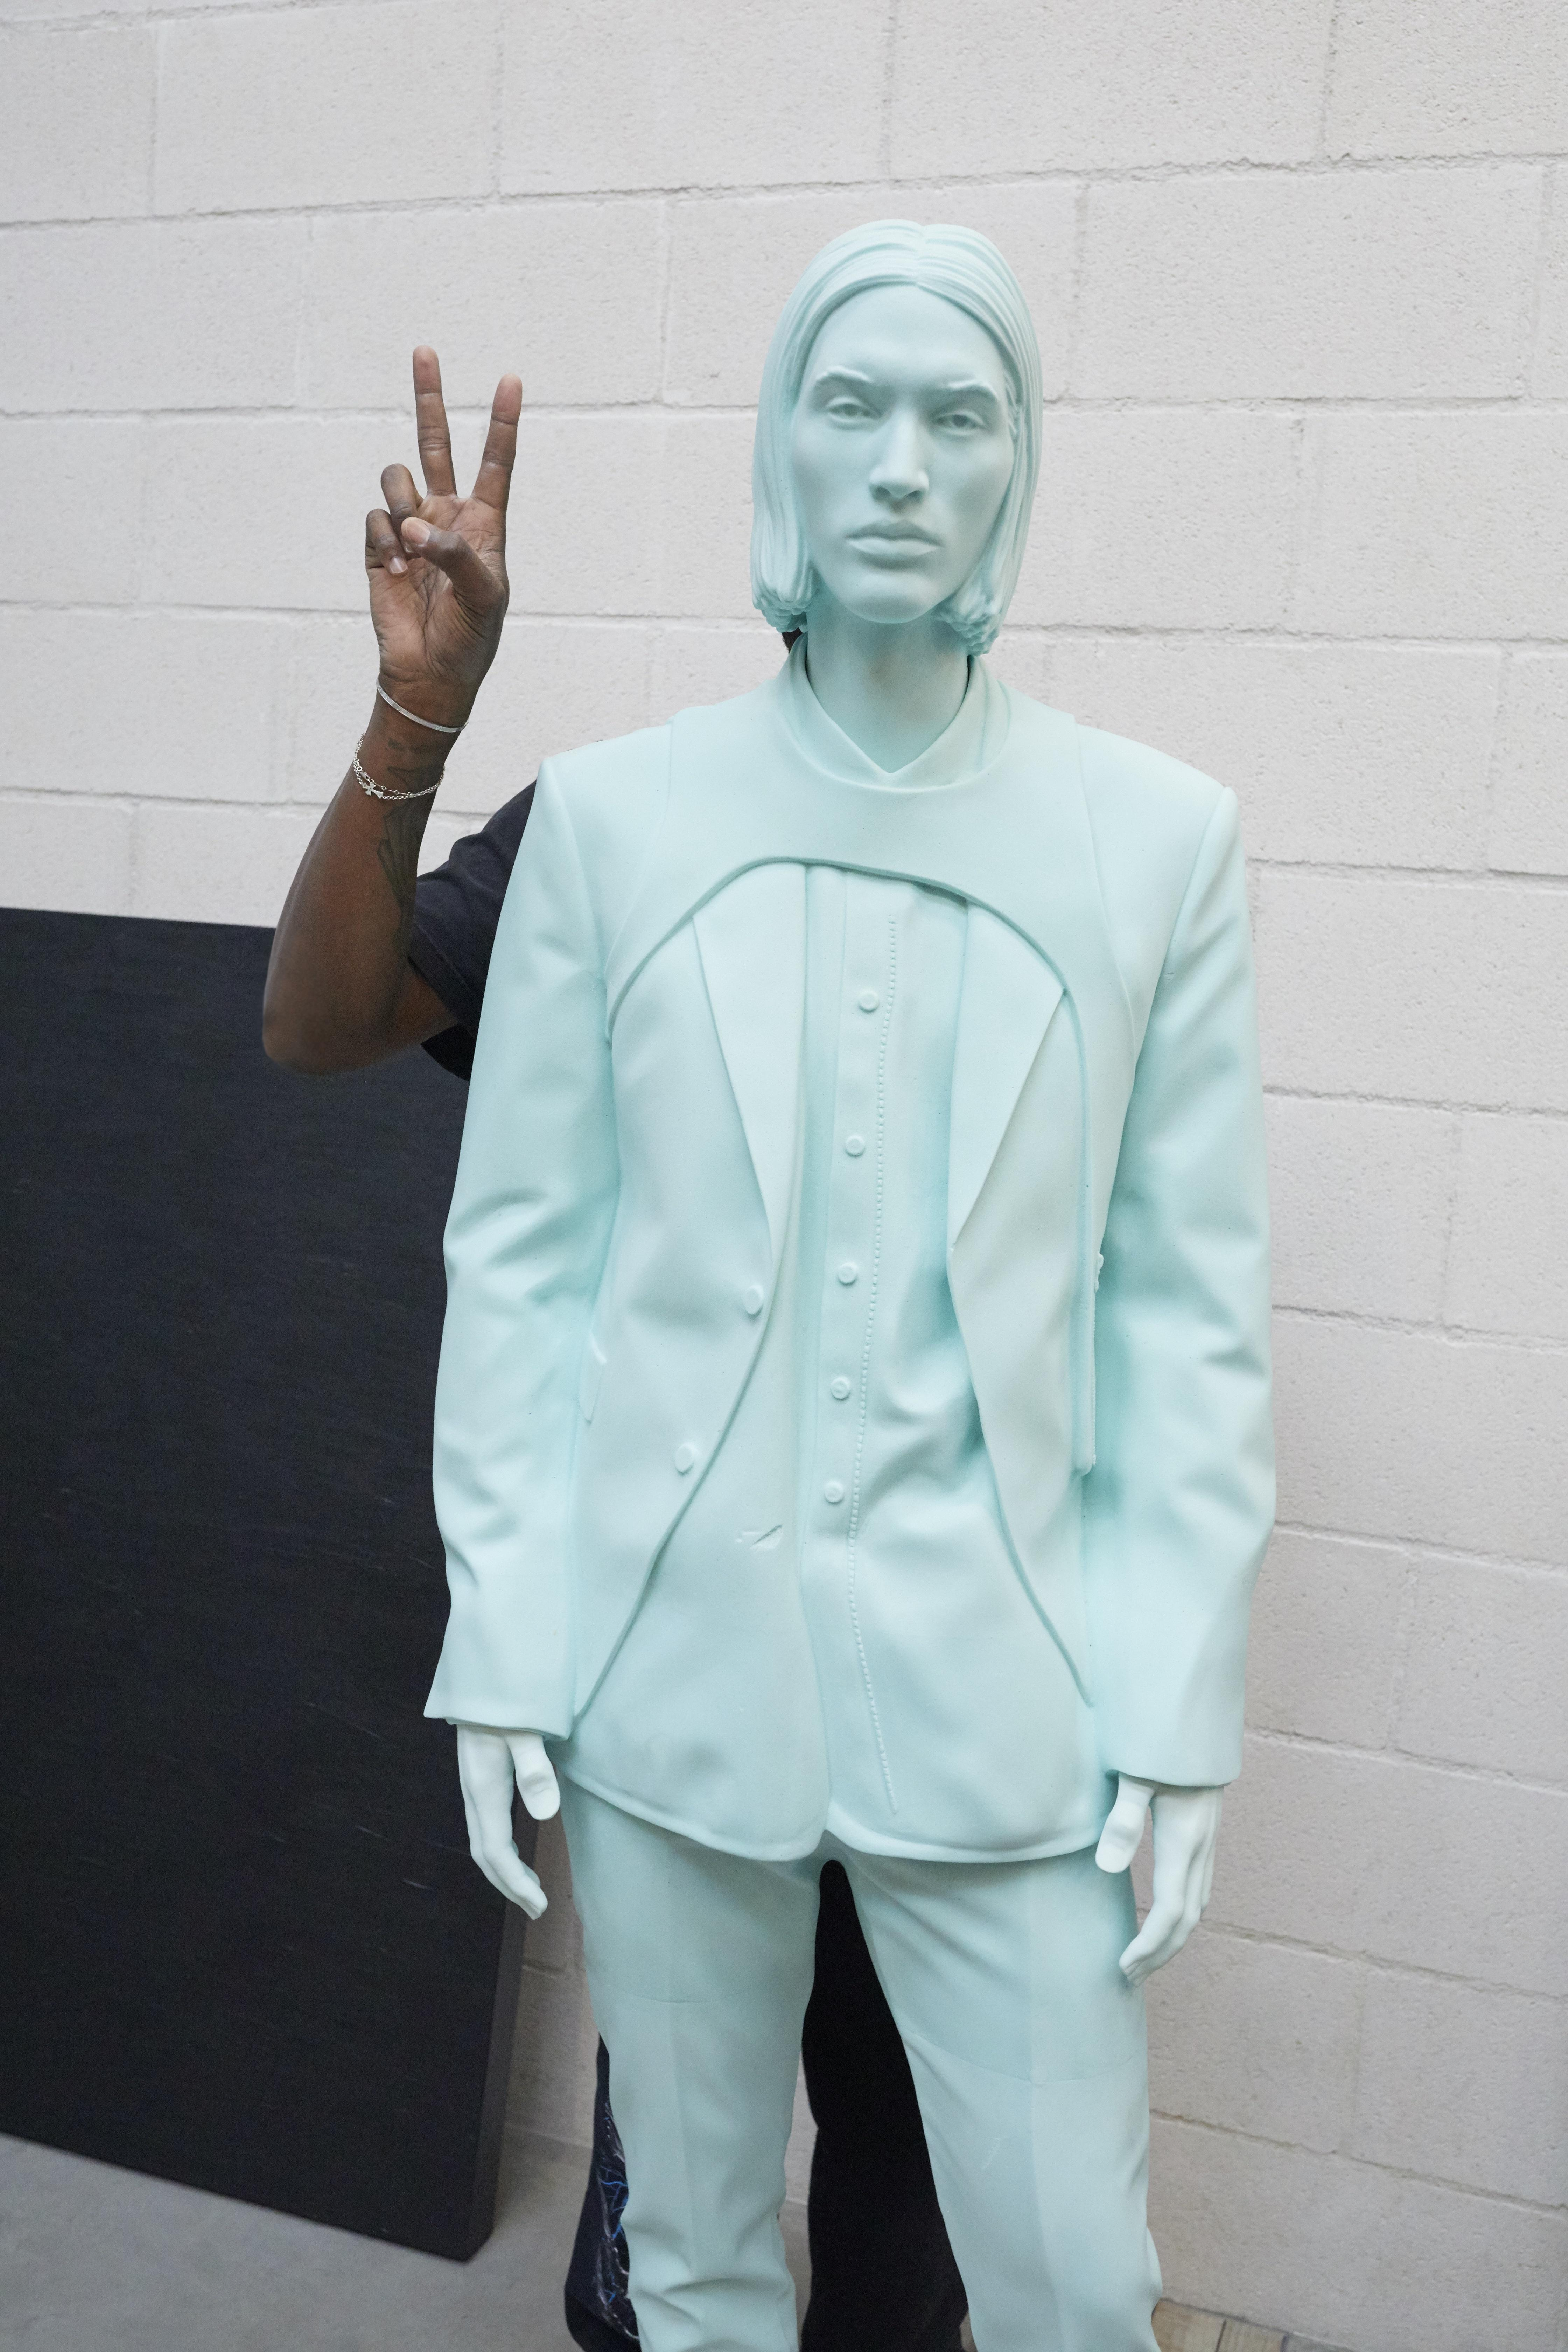 A dark-skinned arm holds up two fingers in a peace symbol from behind a monochrome light-blue mannequin.